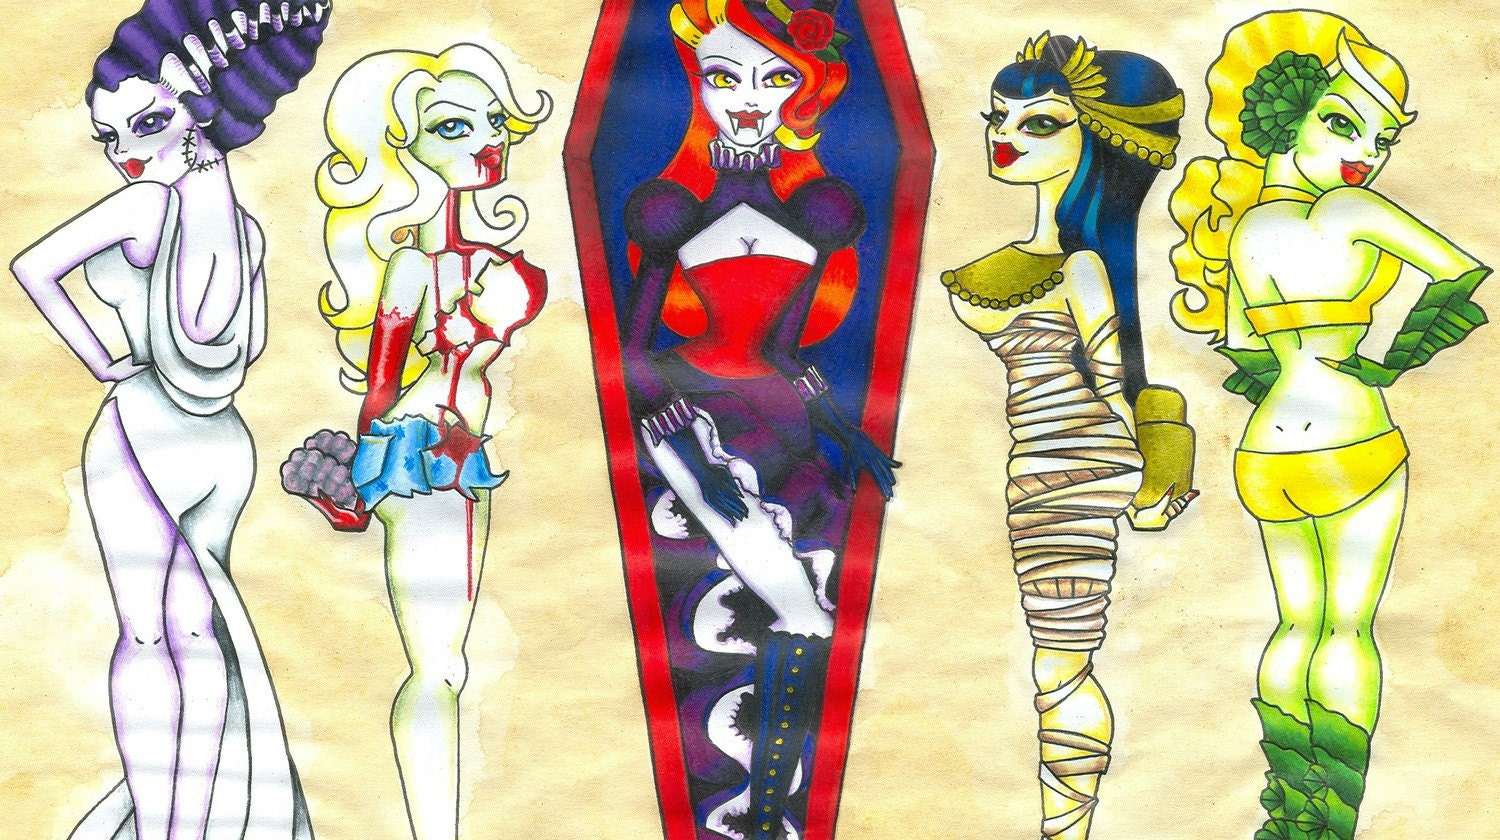 Monster pin up tattoo flash print by dangersjones on etsy for Pin up tattoo flash